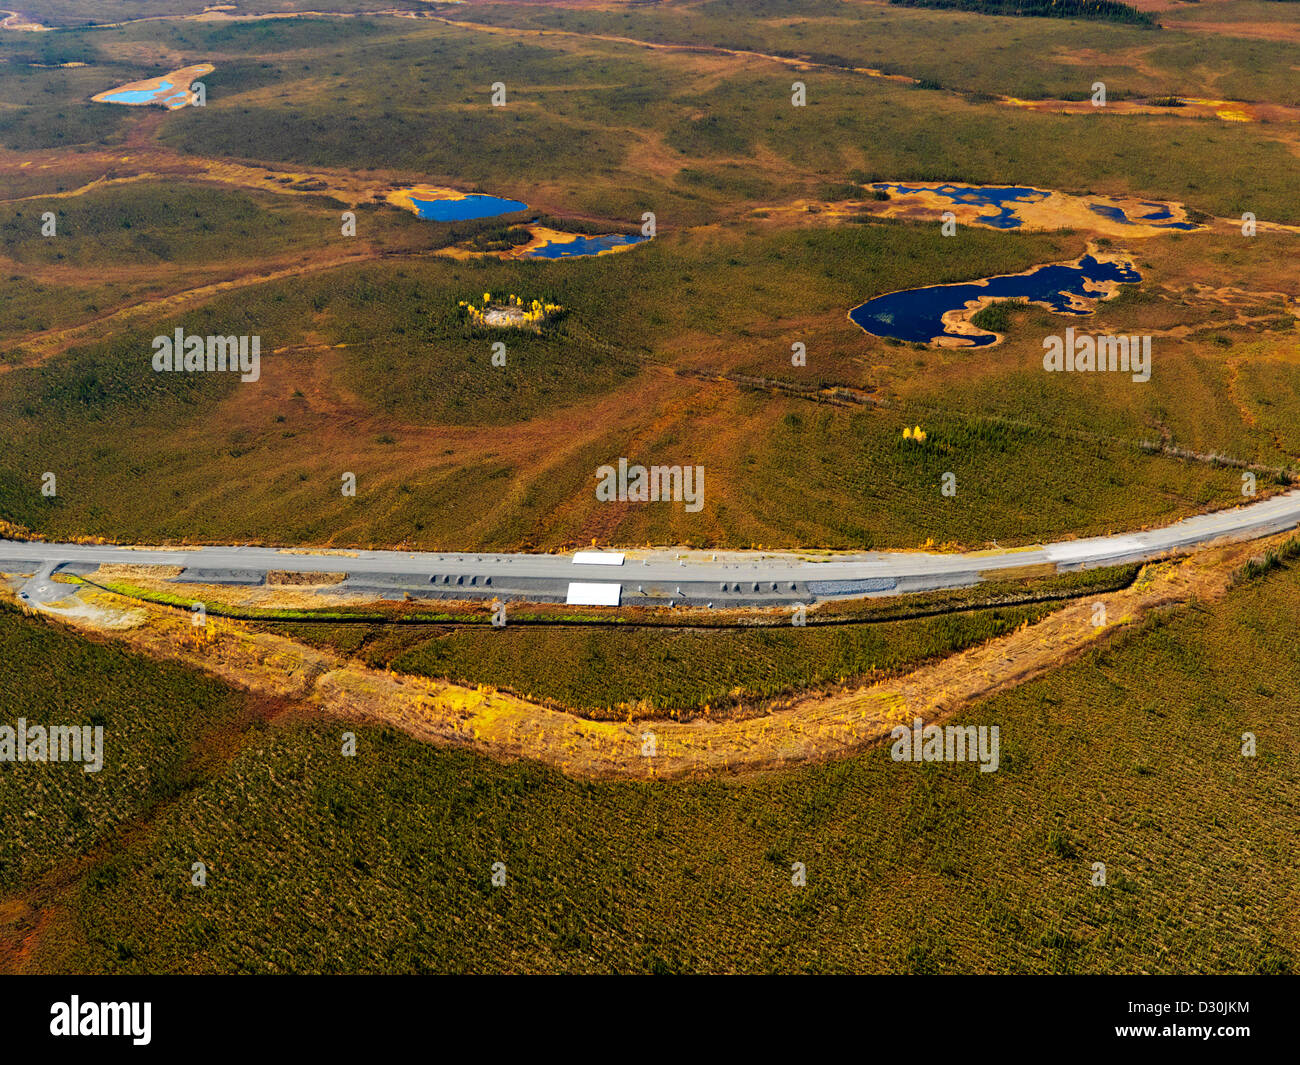 Alaska Highway permafrost test lab just inside the Yukon Territory in Canada from Alaska conducted by University - Stock Image